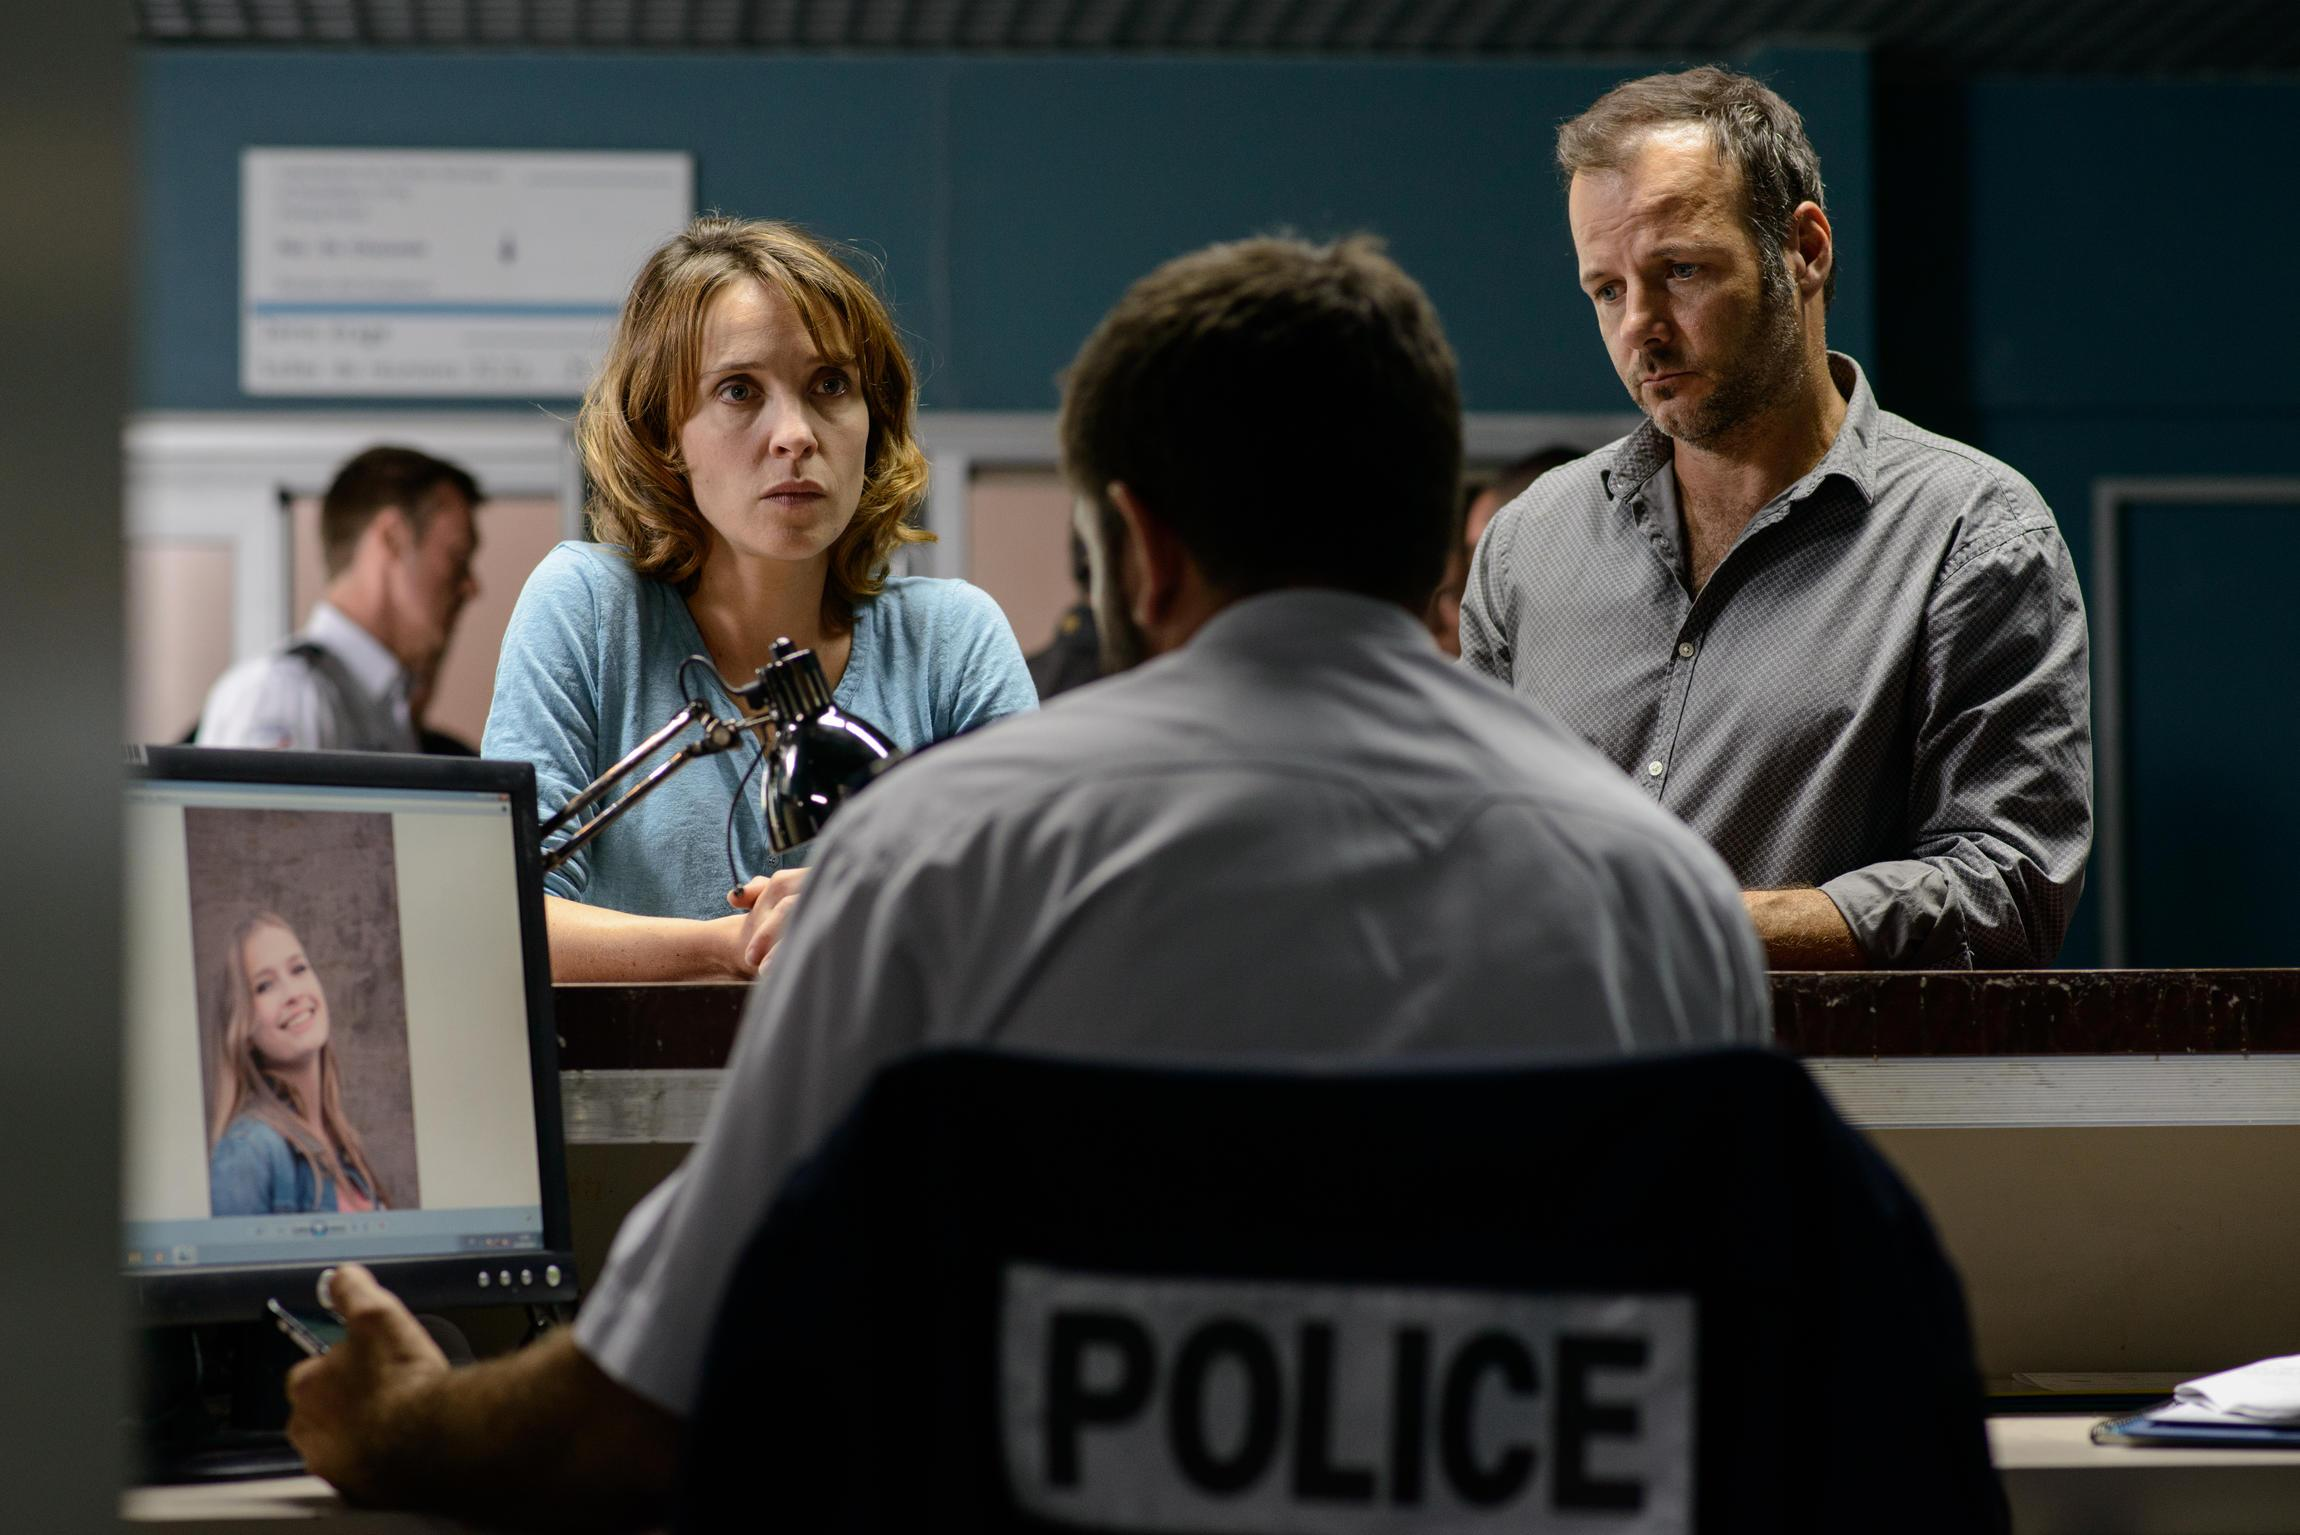 'The Disappearance' Uncovers Big Ratings; Is It France's 'Broadchurch'?